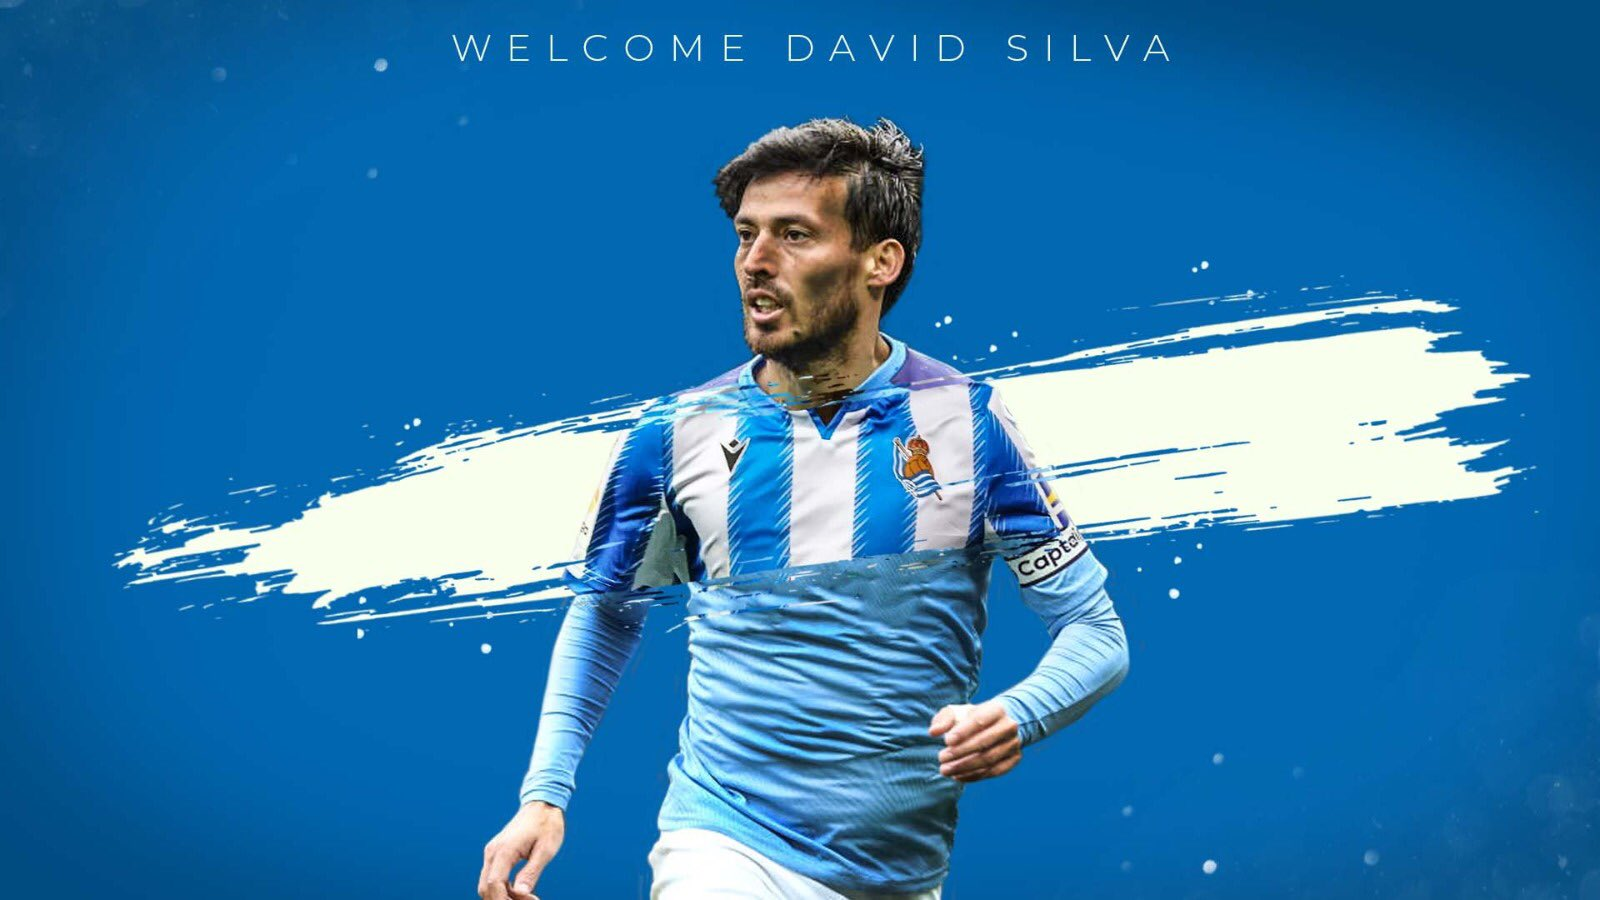 Silva Joins Real Sociedad On Two-Year Deal